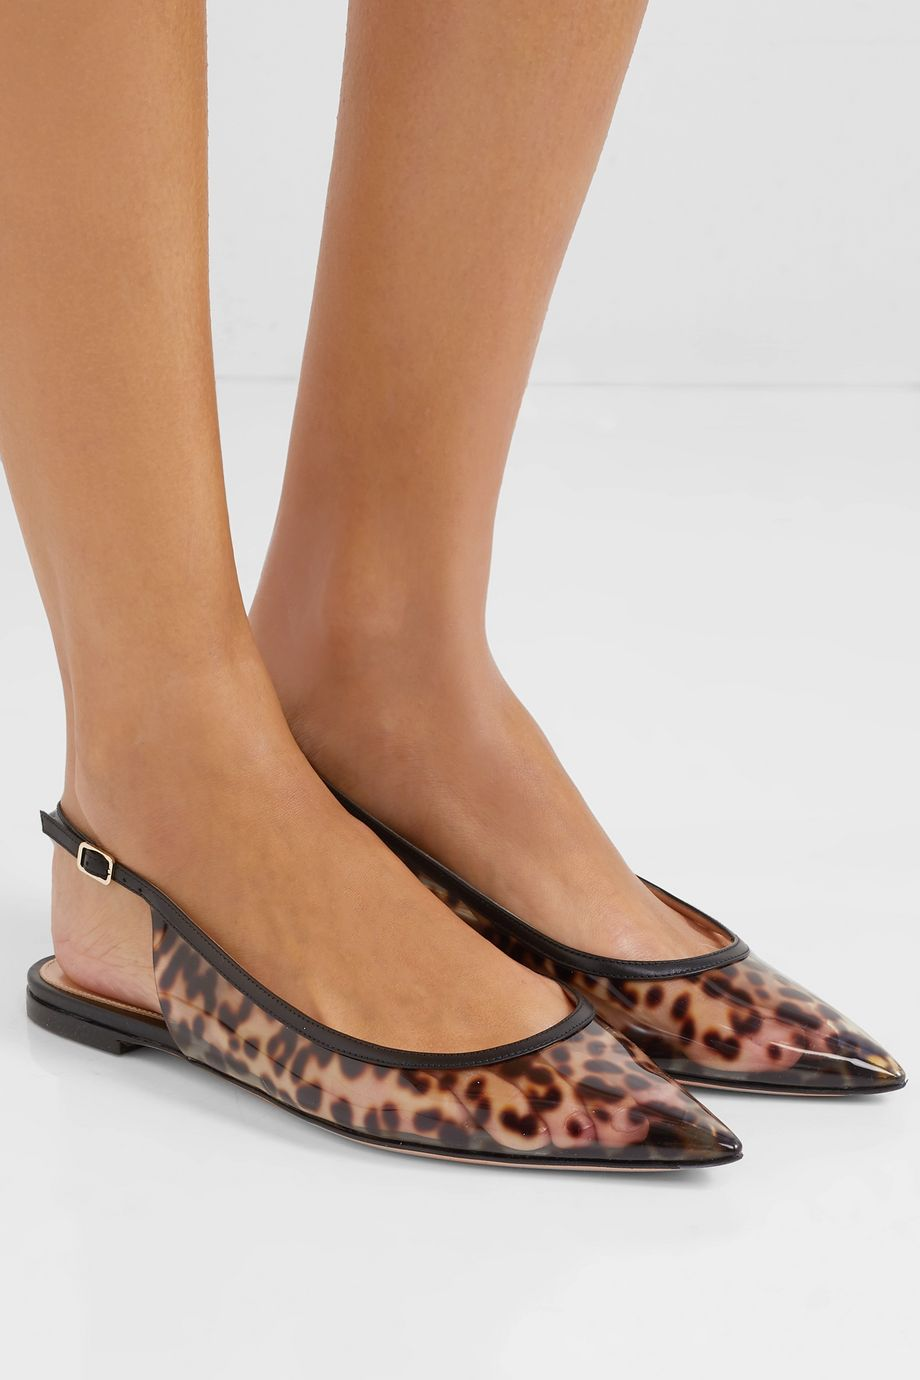 Gianvito Rossi Patent leather-trimmed leopard-print PVC slingback point-toe flats